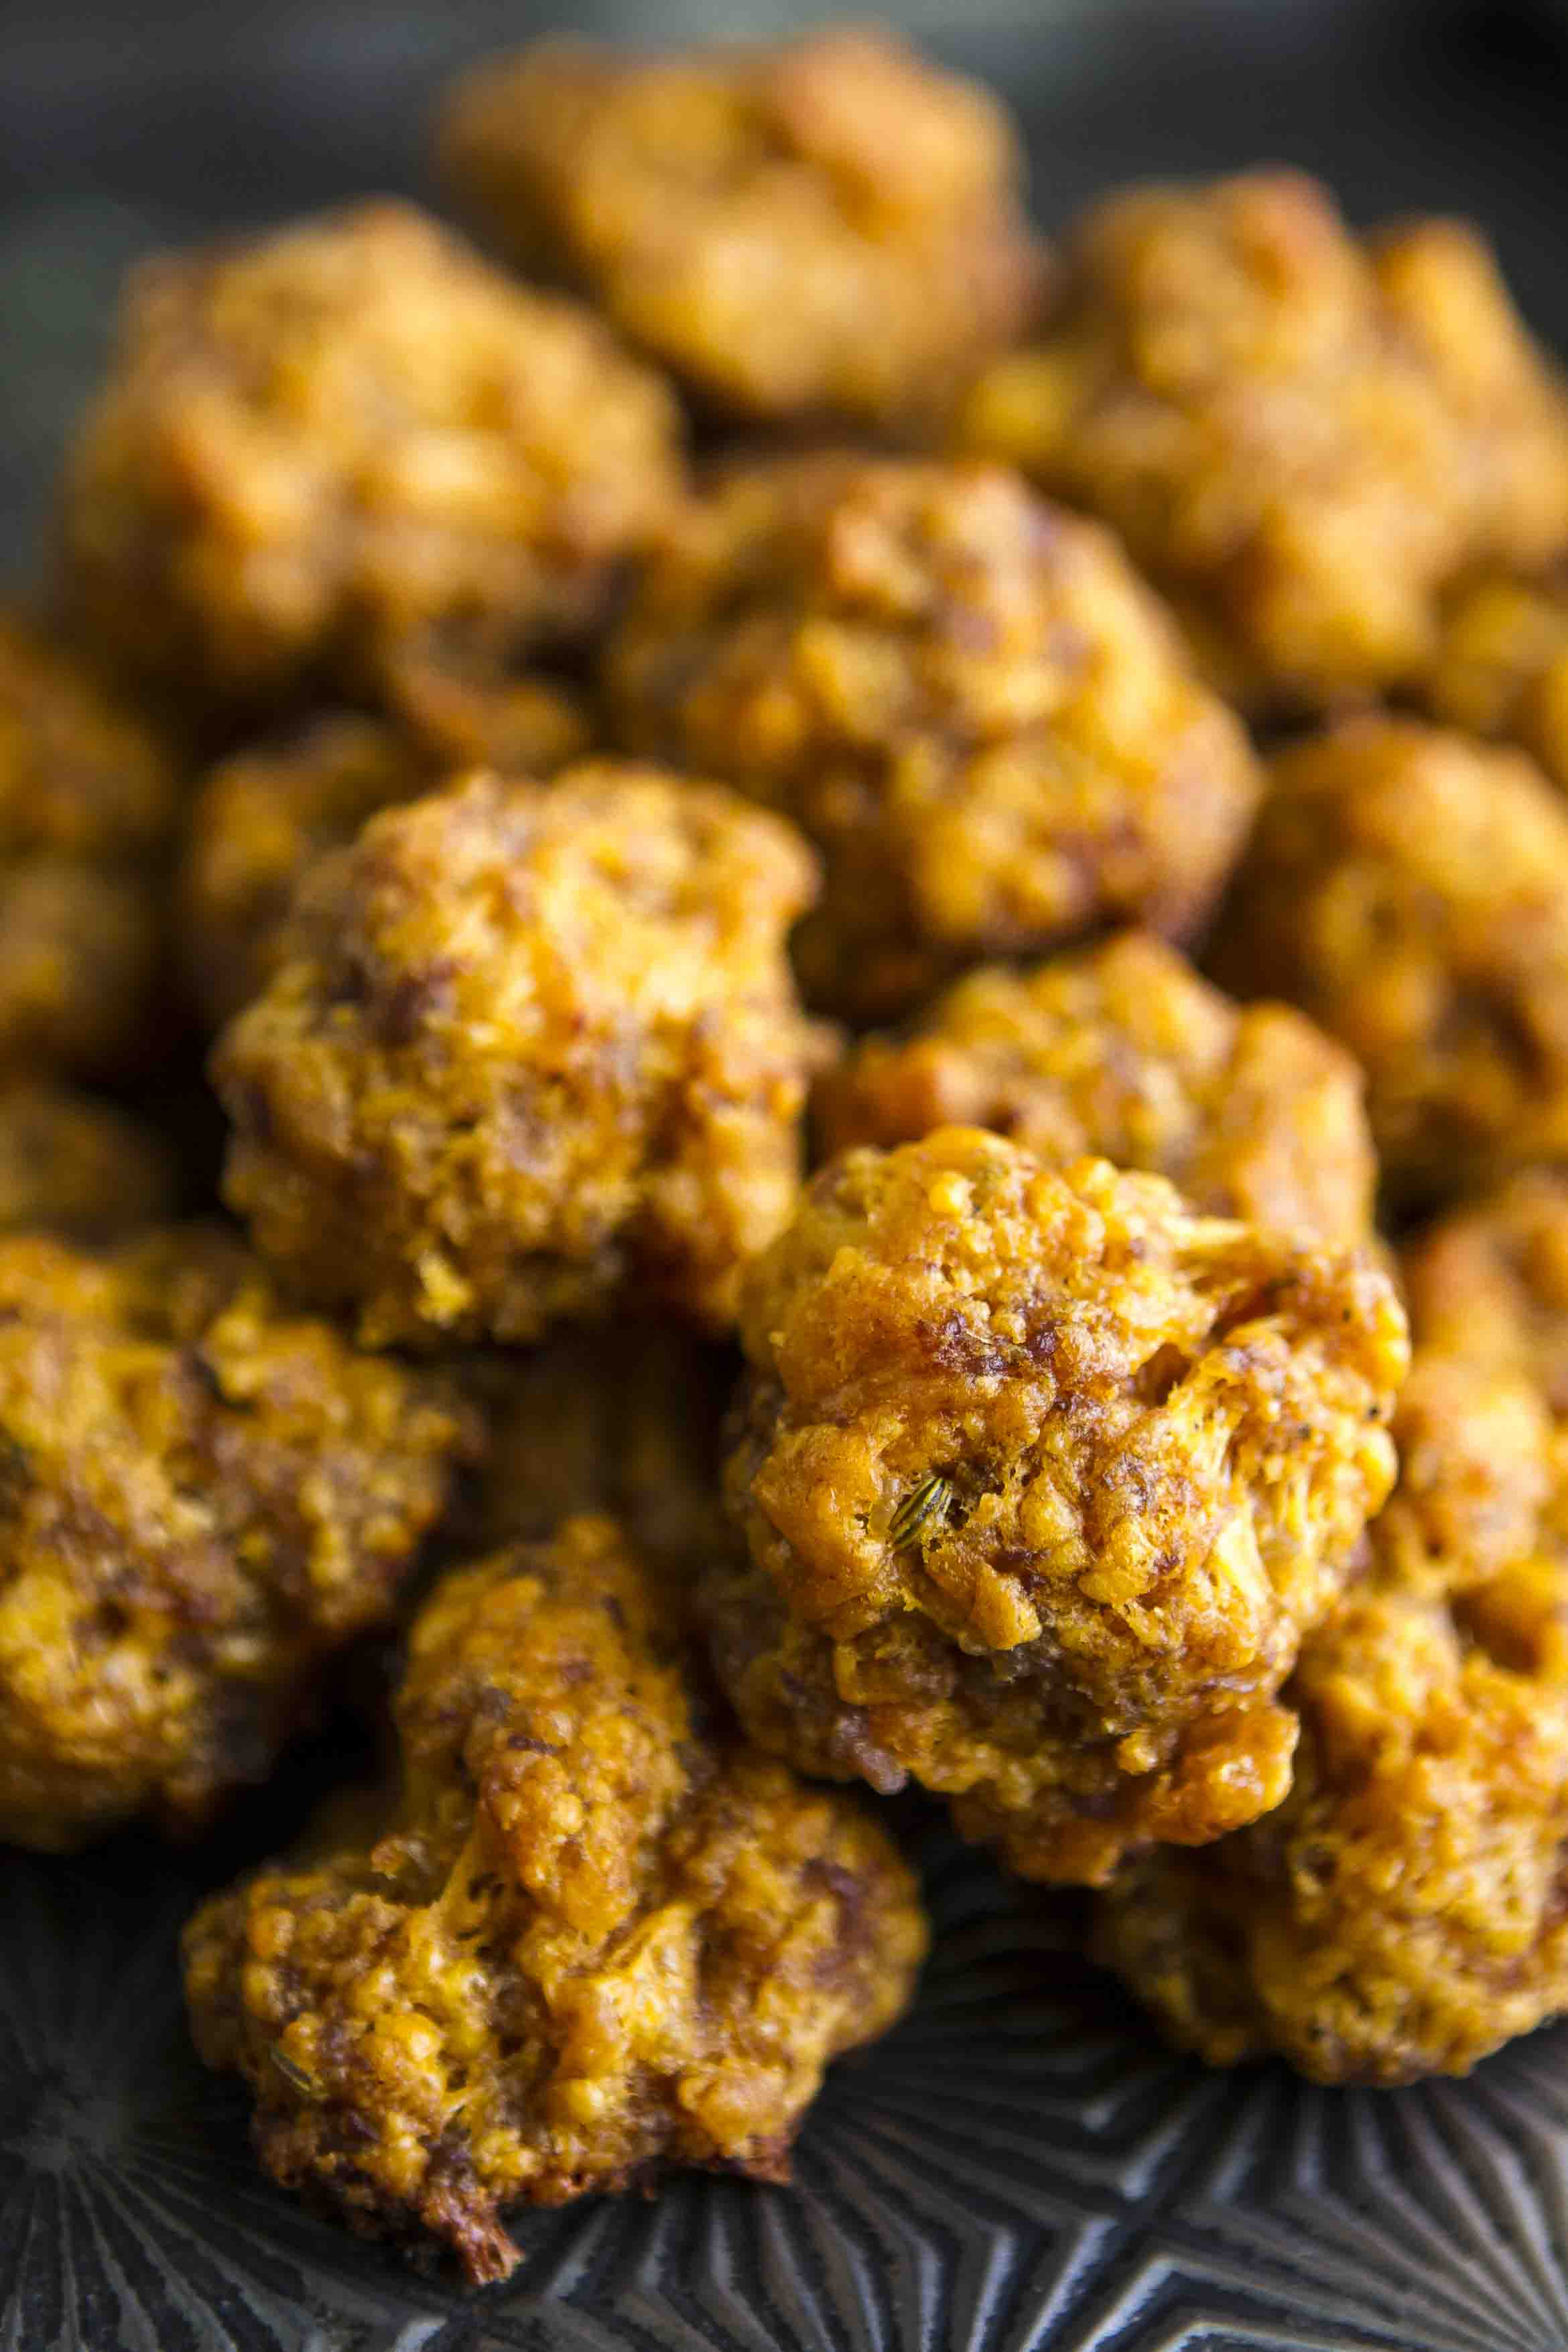 Sriracha Sausage Cheddar Balls -- a kicked up take on the Southern classic sausage cheddar balls recipe… These easy sausage balls are made from scratch and totally kid approved, a MUST for game day! | unsophisticook.com